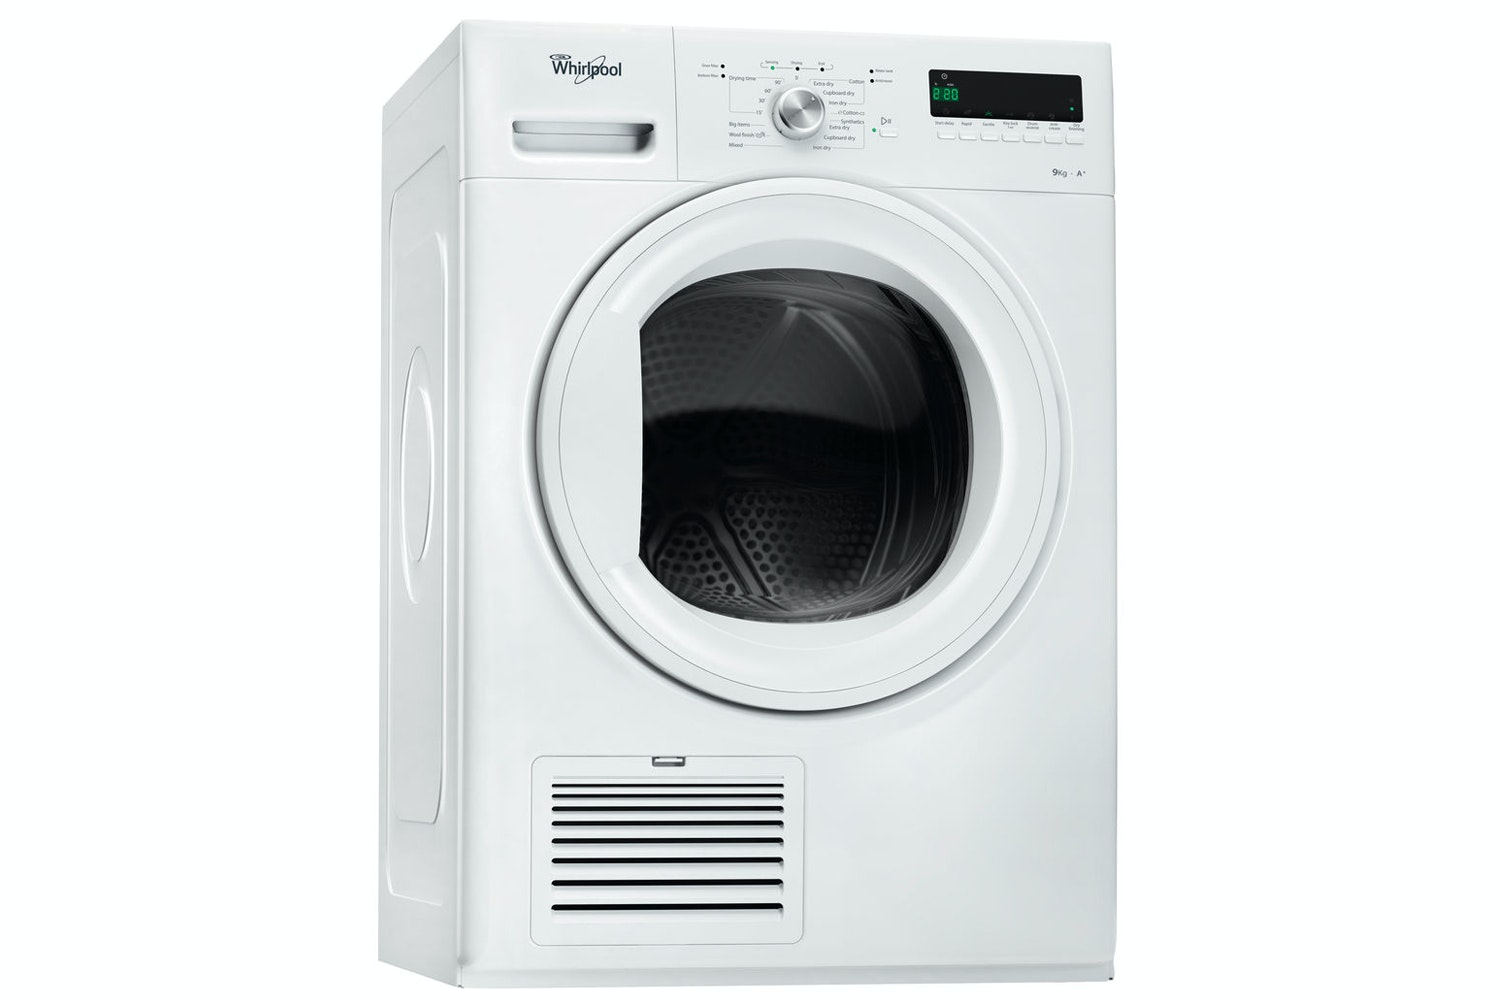 Whirlpool 9kg 6th Sense Condenser Dryer | DDLX90110